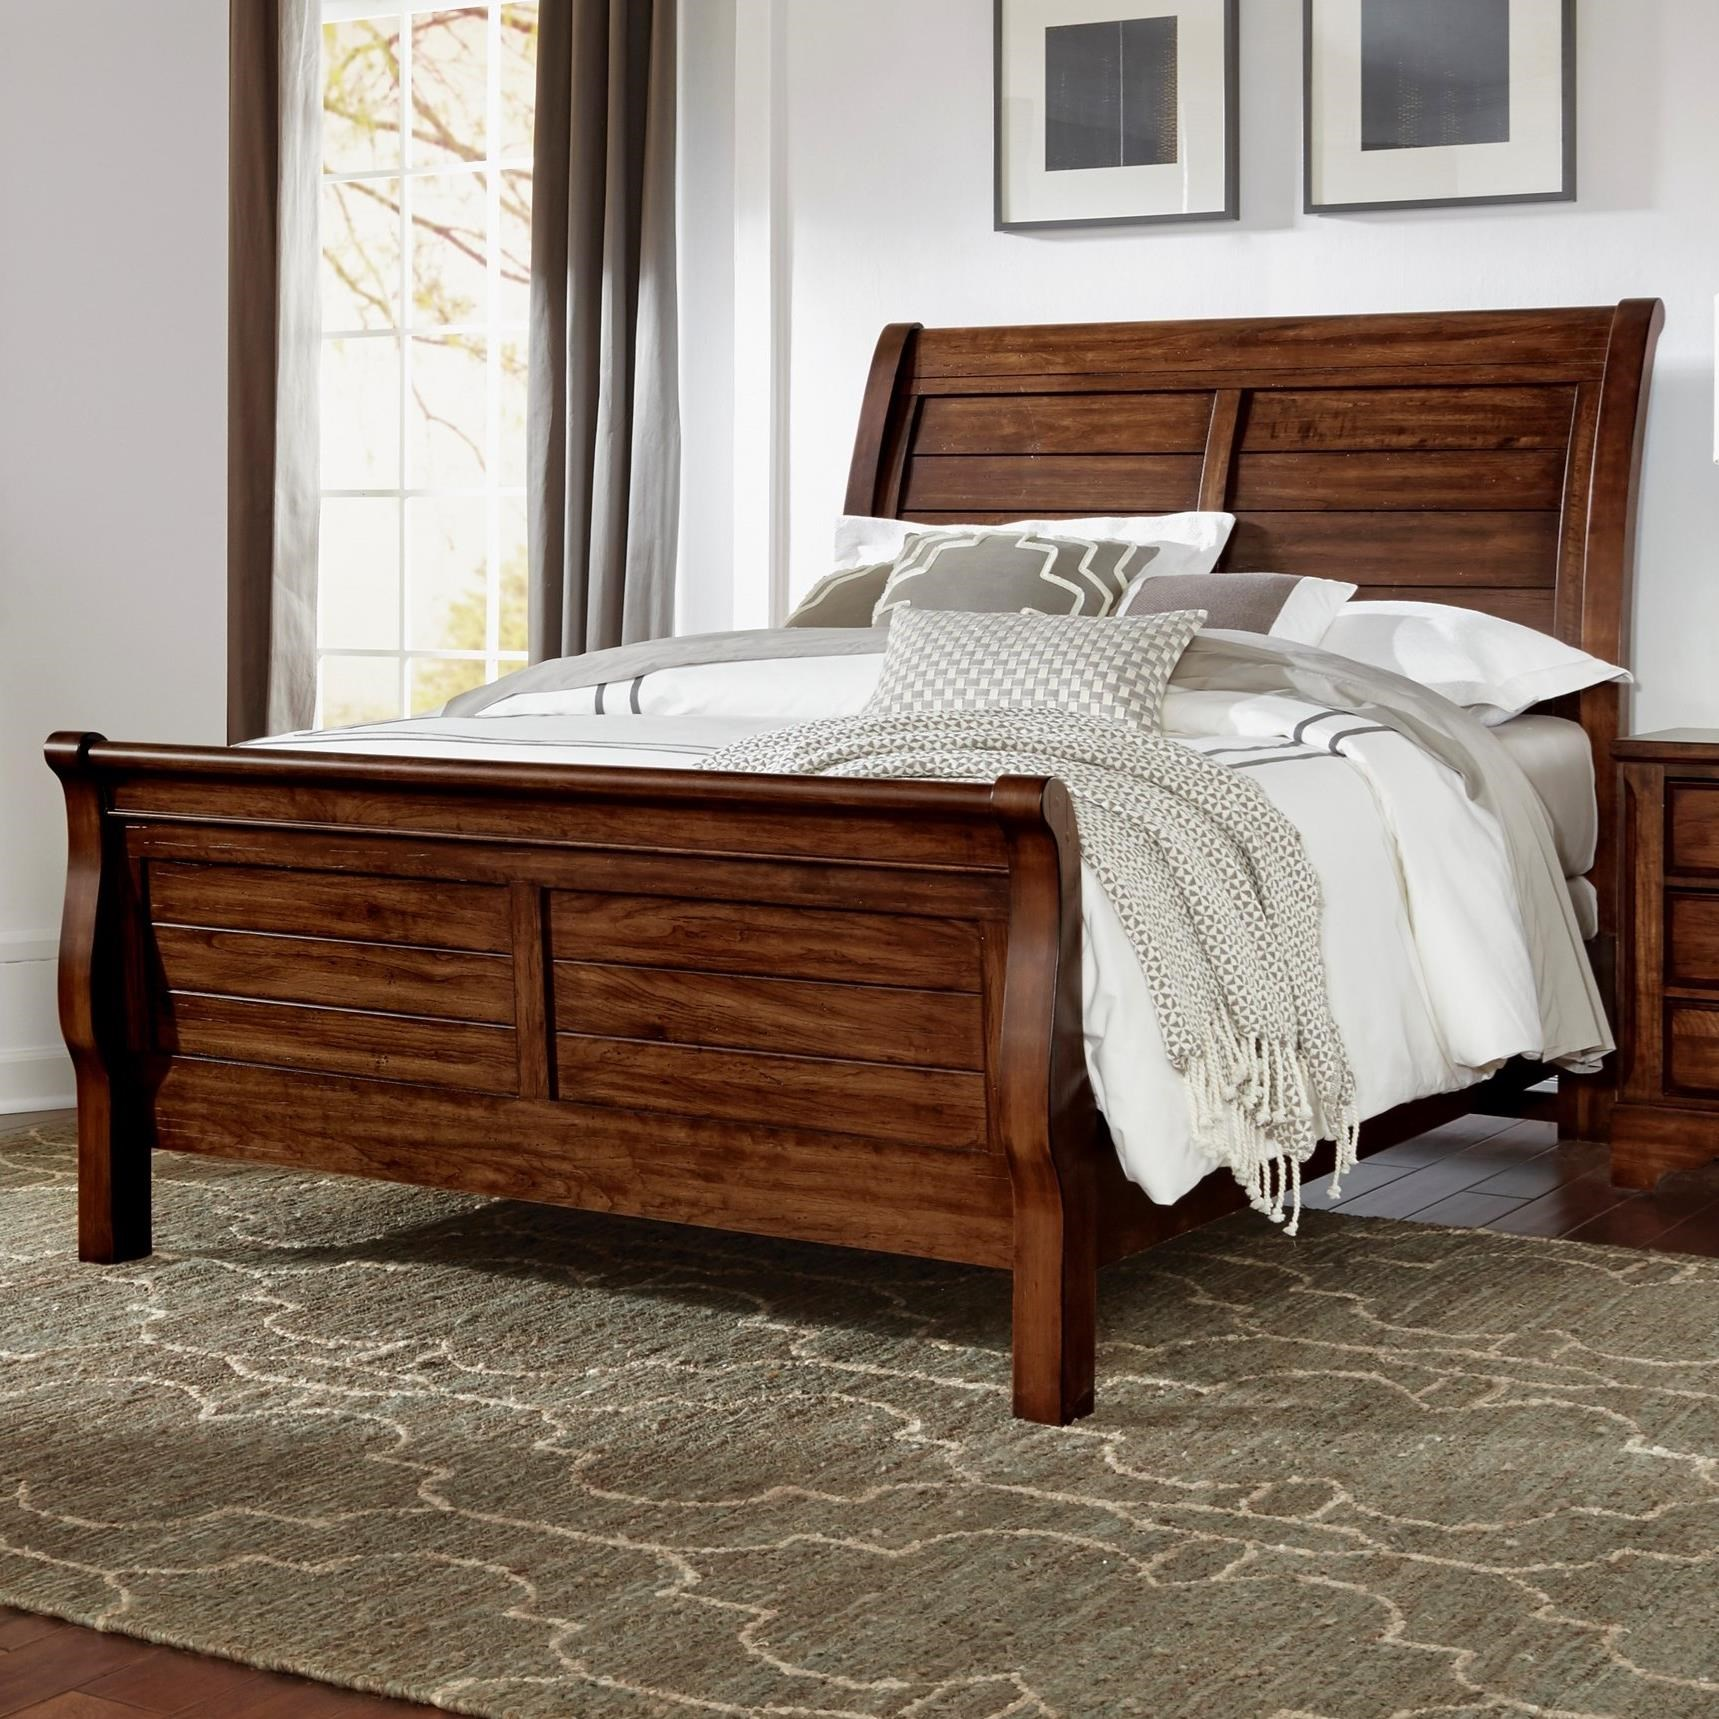 Artisan Choices Queen Sleigh Bed by Artisan & Post at Northeast Factory Direct